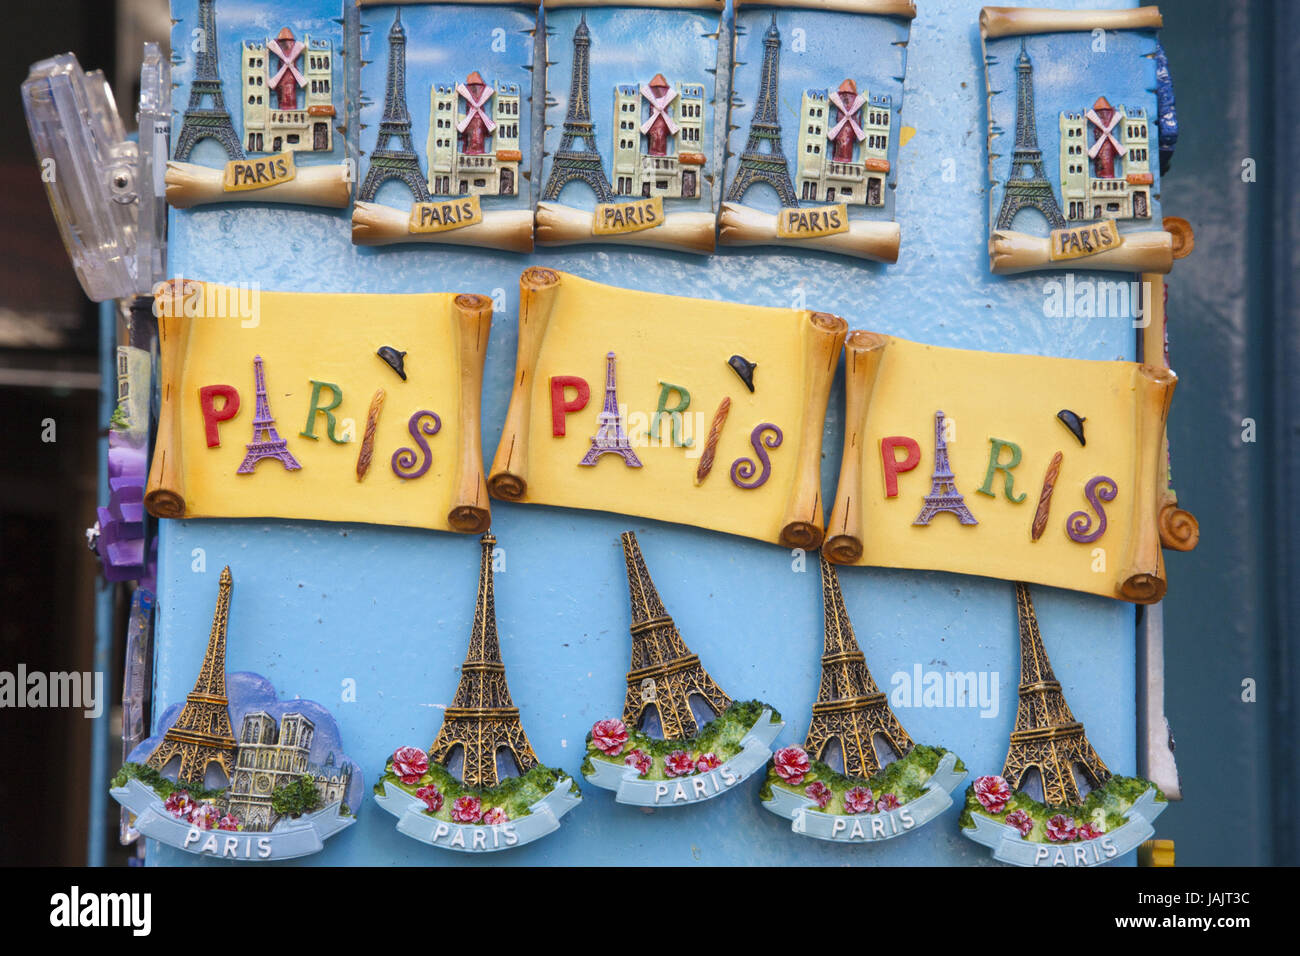 France,Paris,souvenirs,fridge magnets,Paris places of interest, - Stock Image